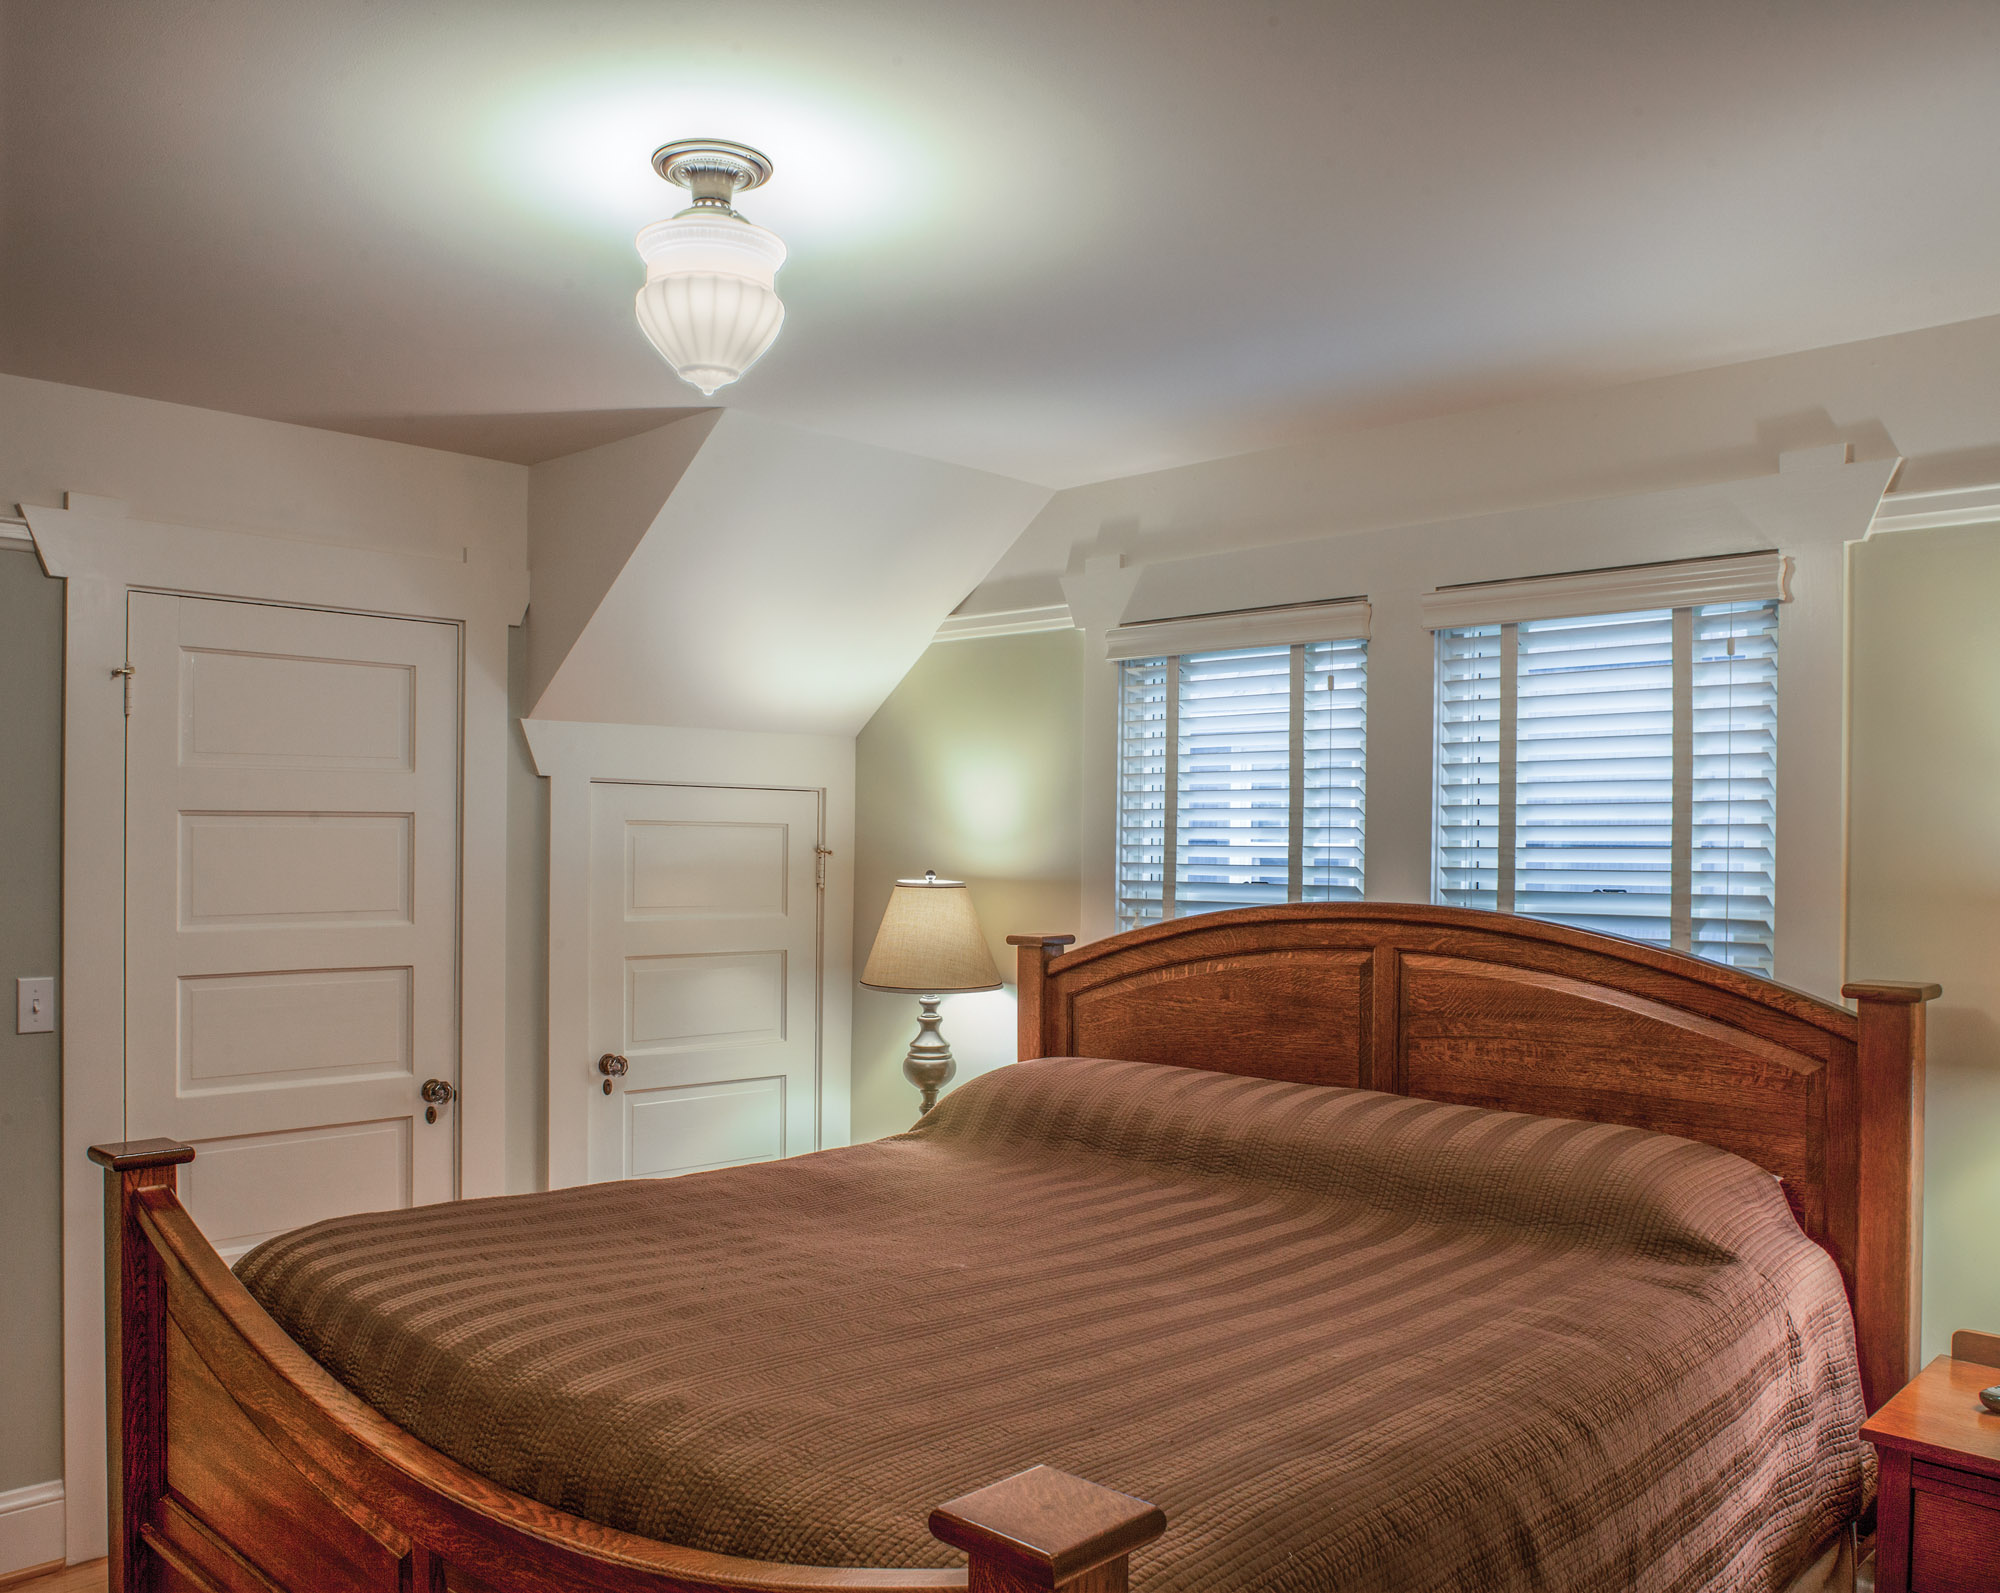 Now with a closet and direct access to the restored bathroom, the master bedroom sits conveniently on the first floor.